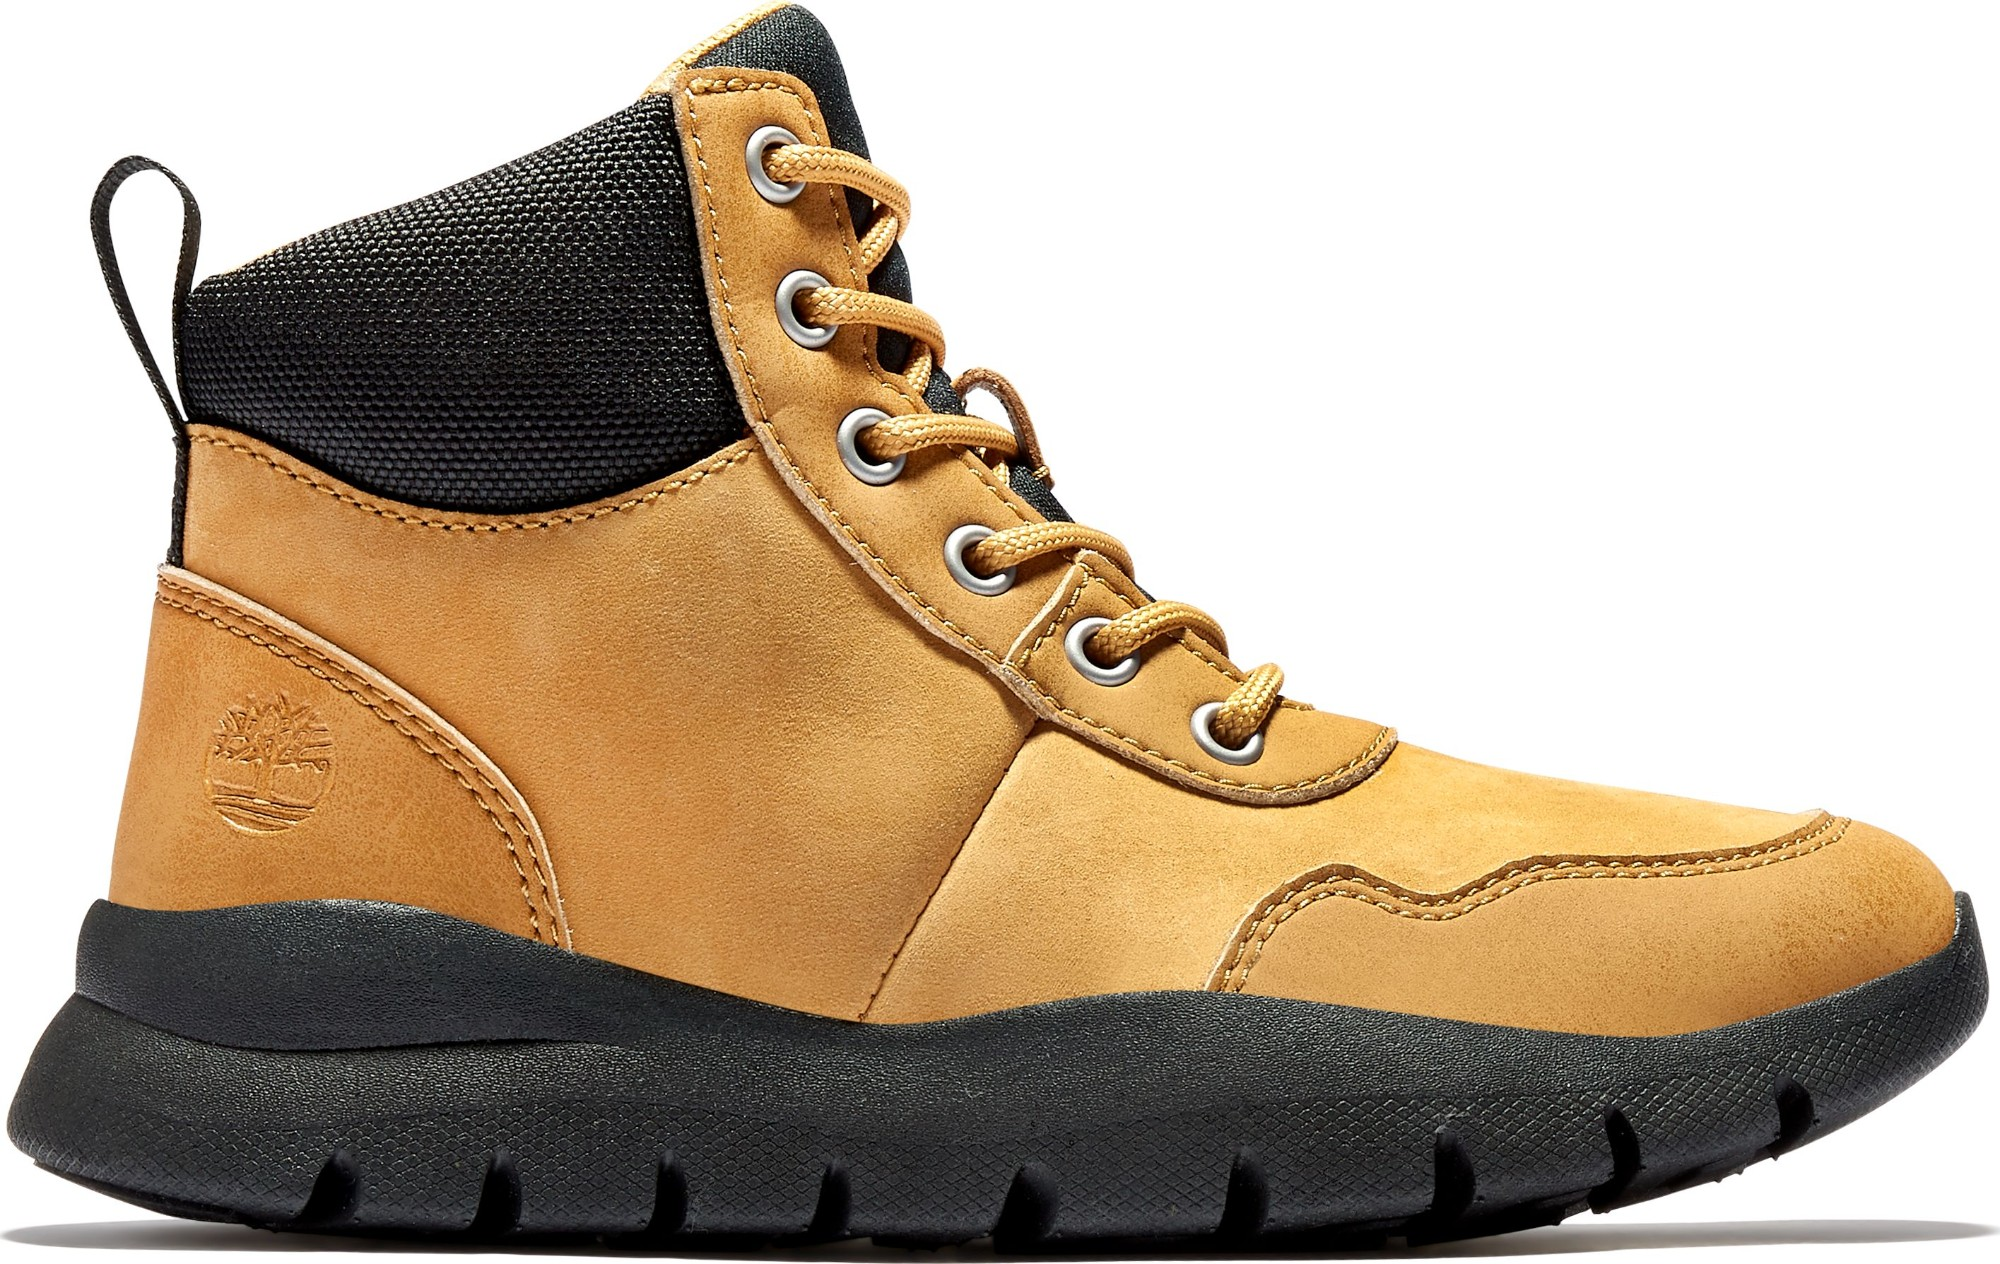 Timberland Baroughs Sneaker Boots Wheat 39